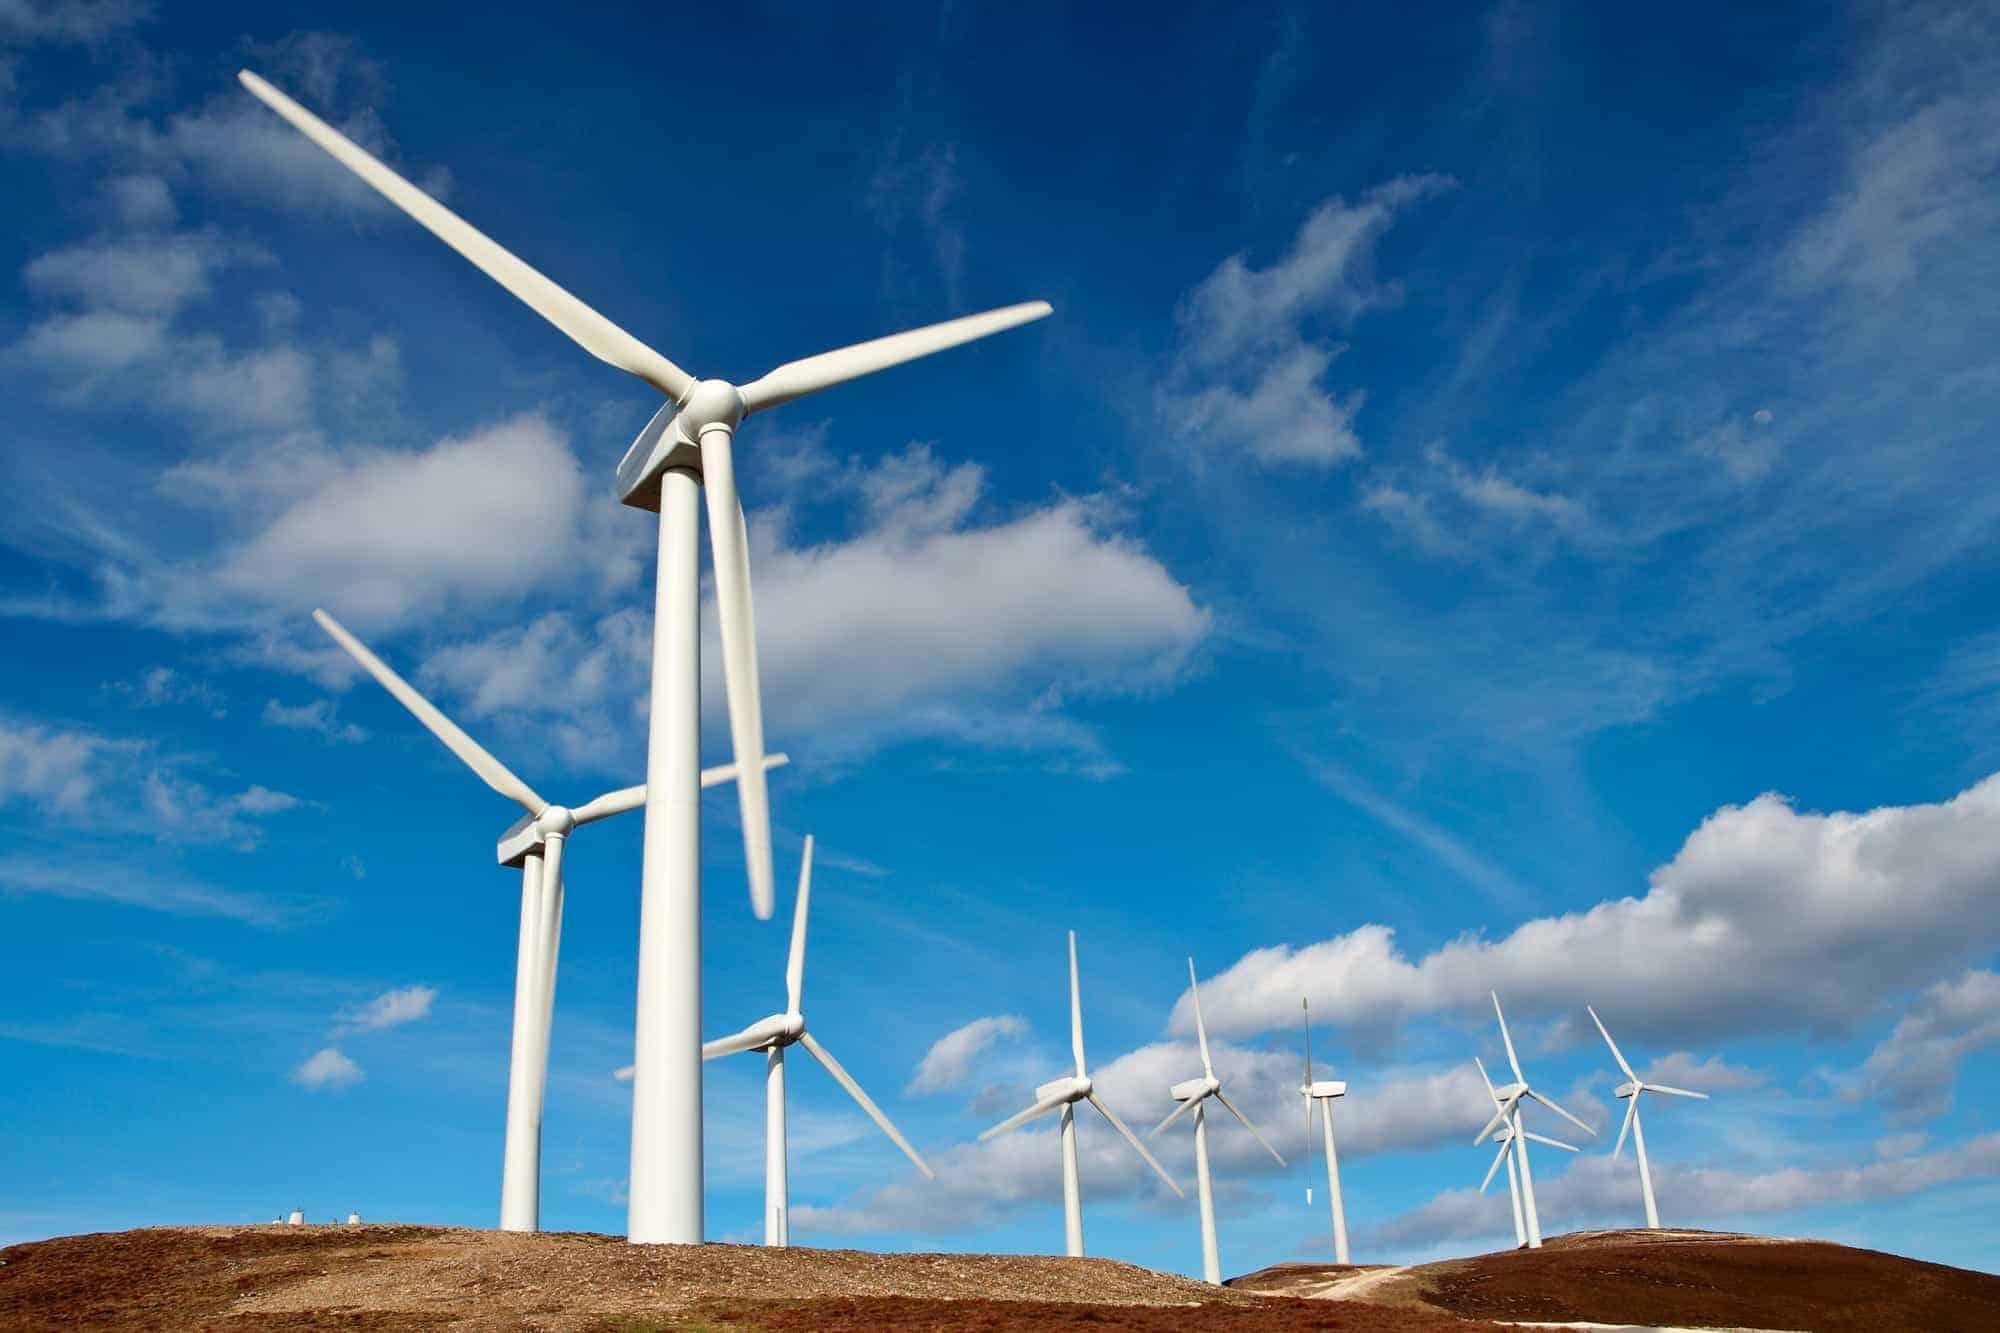 First European center to test robots at wind farms in Portugal